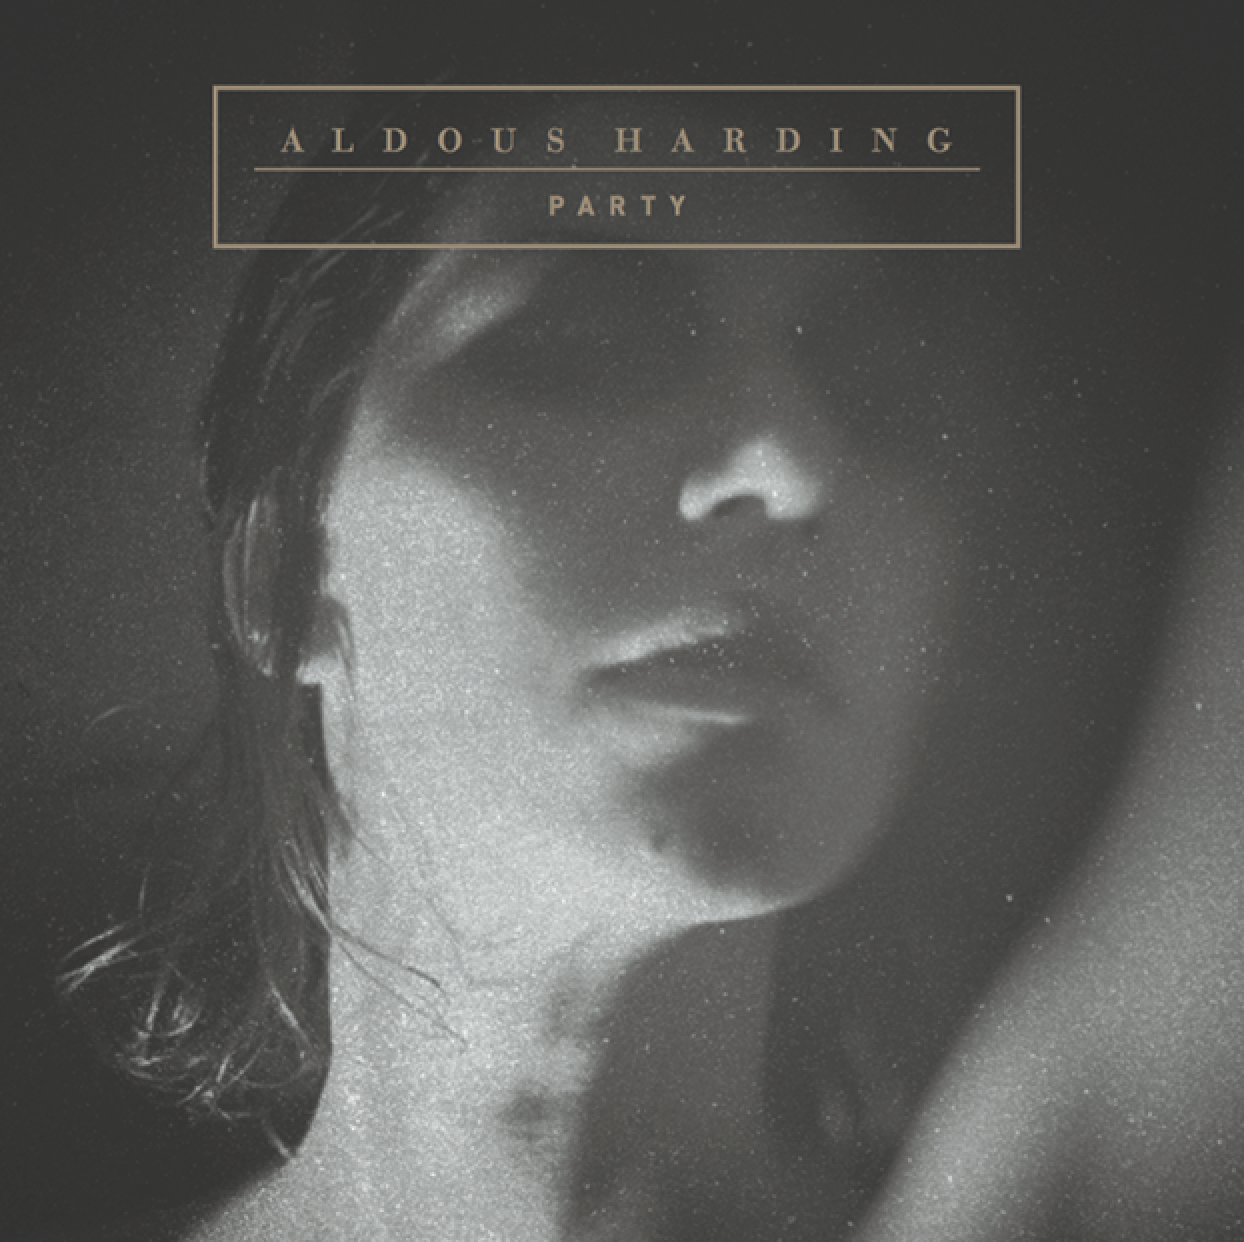 Party  -Aldous Harding   New Zealand's Aldous Harding toured Washington twice this year, and both shows showcased her impeccable songwriting along with a harrowingly singular vision of gothic folk.